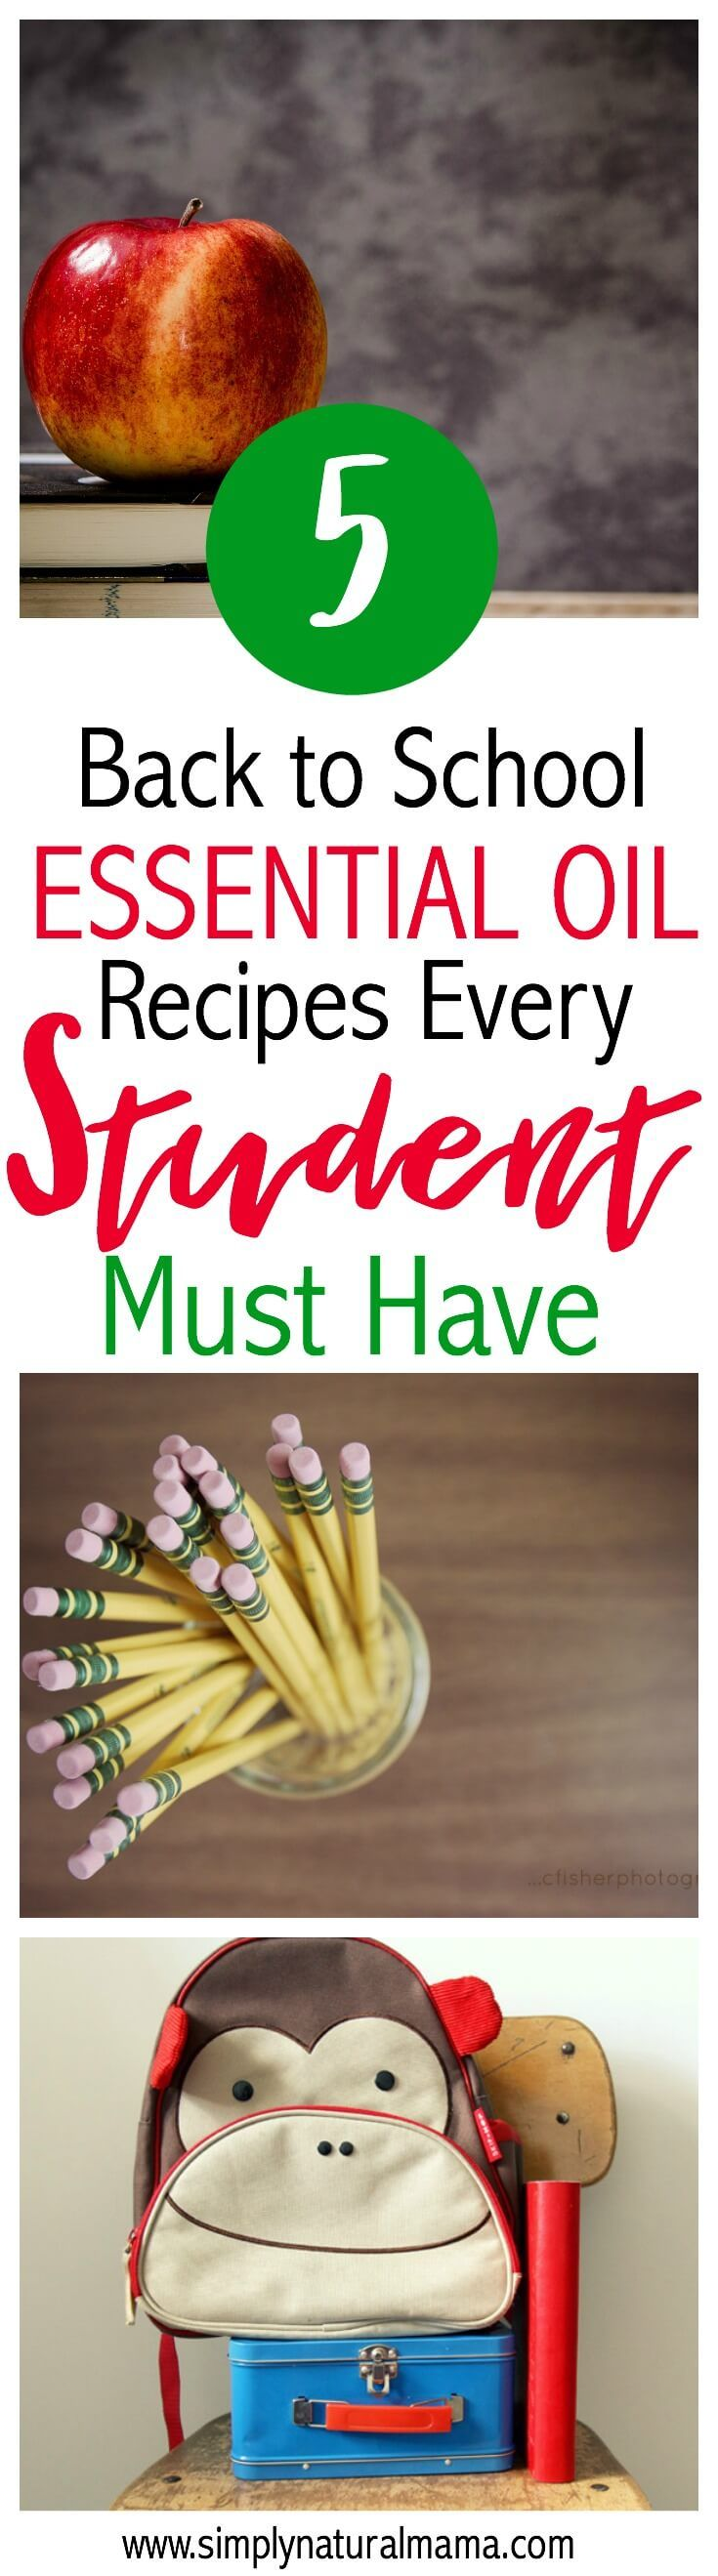 I loved this post! My kid is heading back to the classroom this fall, and I am so glad that I checked out these 5 back to school essential oil recipes every student (and mama) must have!  I can't wait to put them in his backpack and have him use them throughout the day to stay focused and healthy! via @simplynaturalma